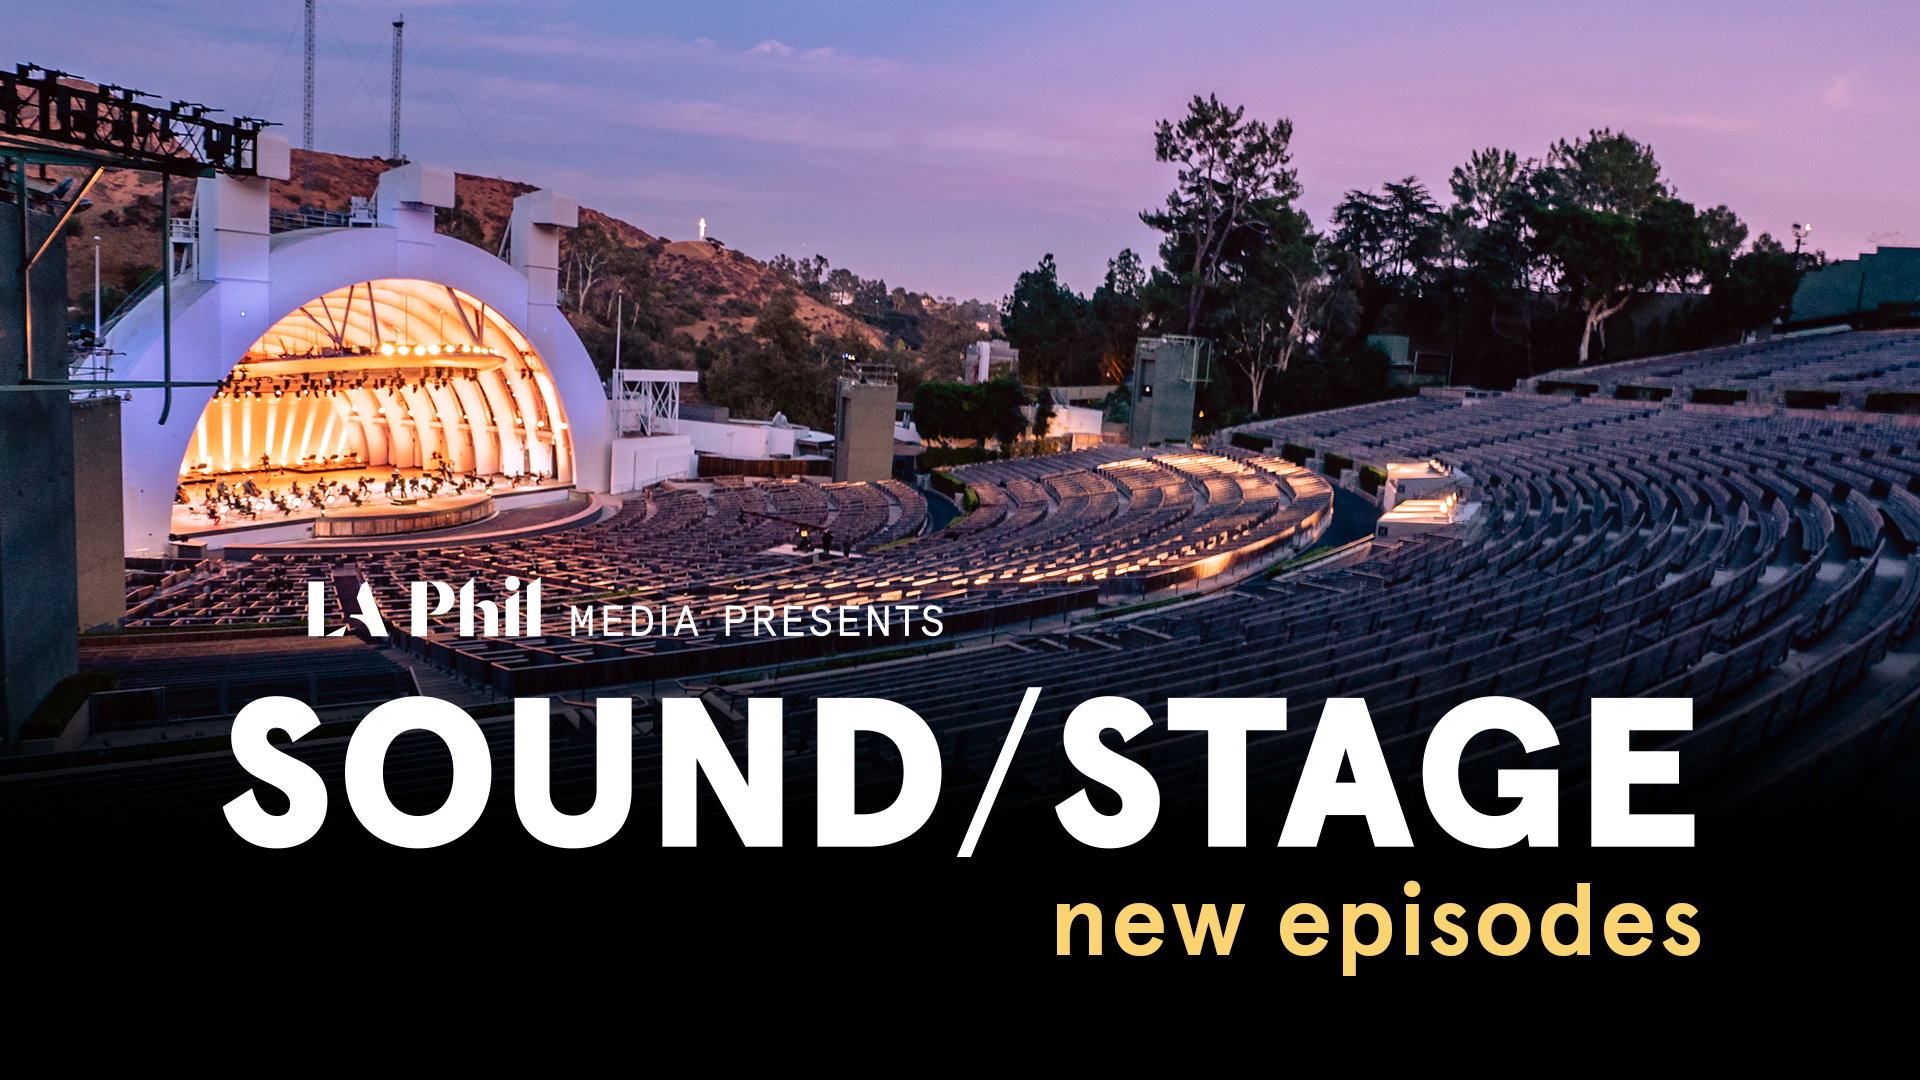 New episodes of Sound/Stage are out now!